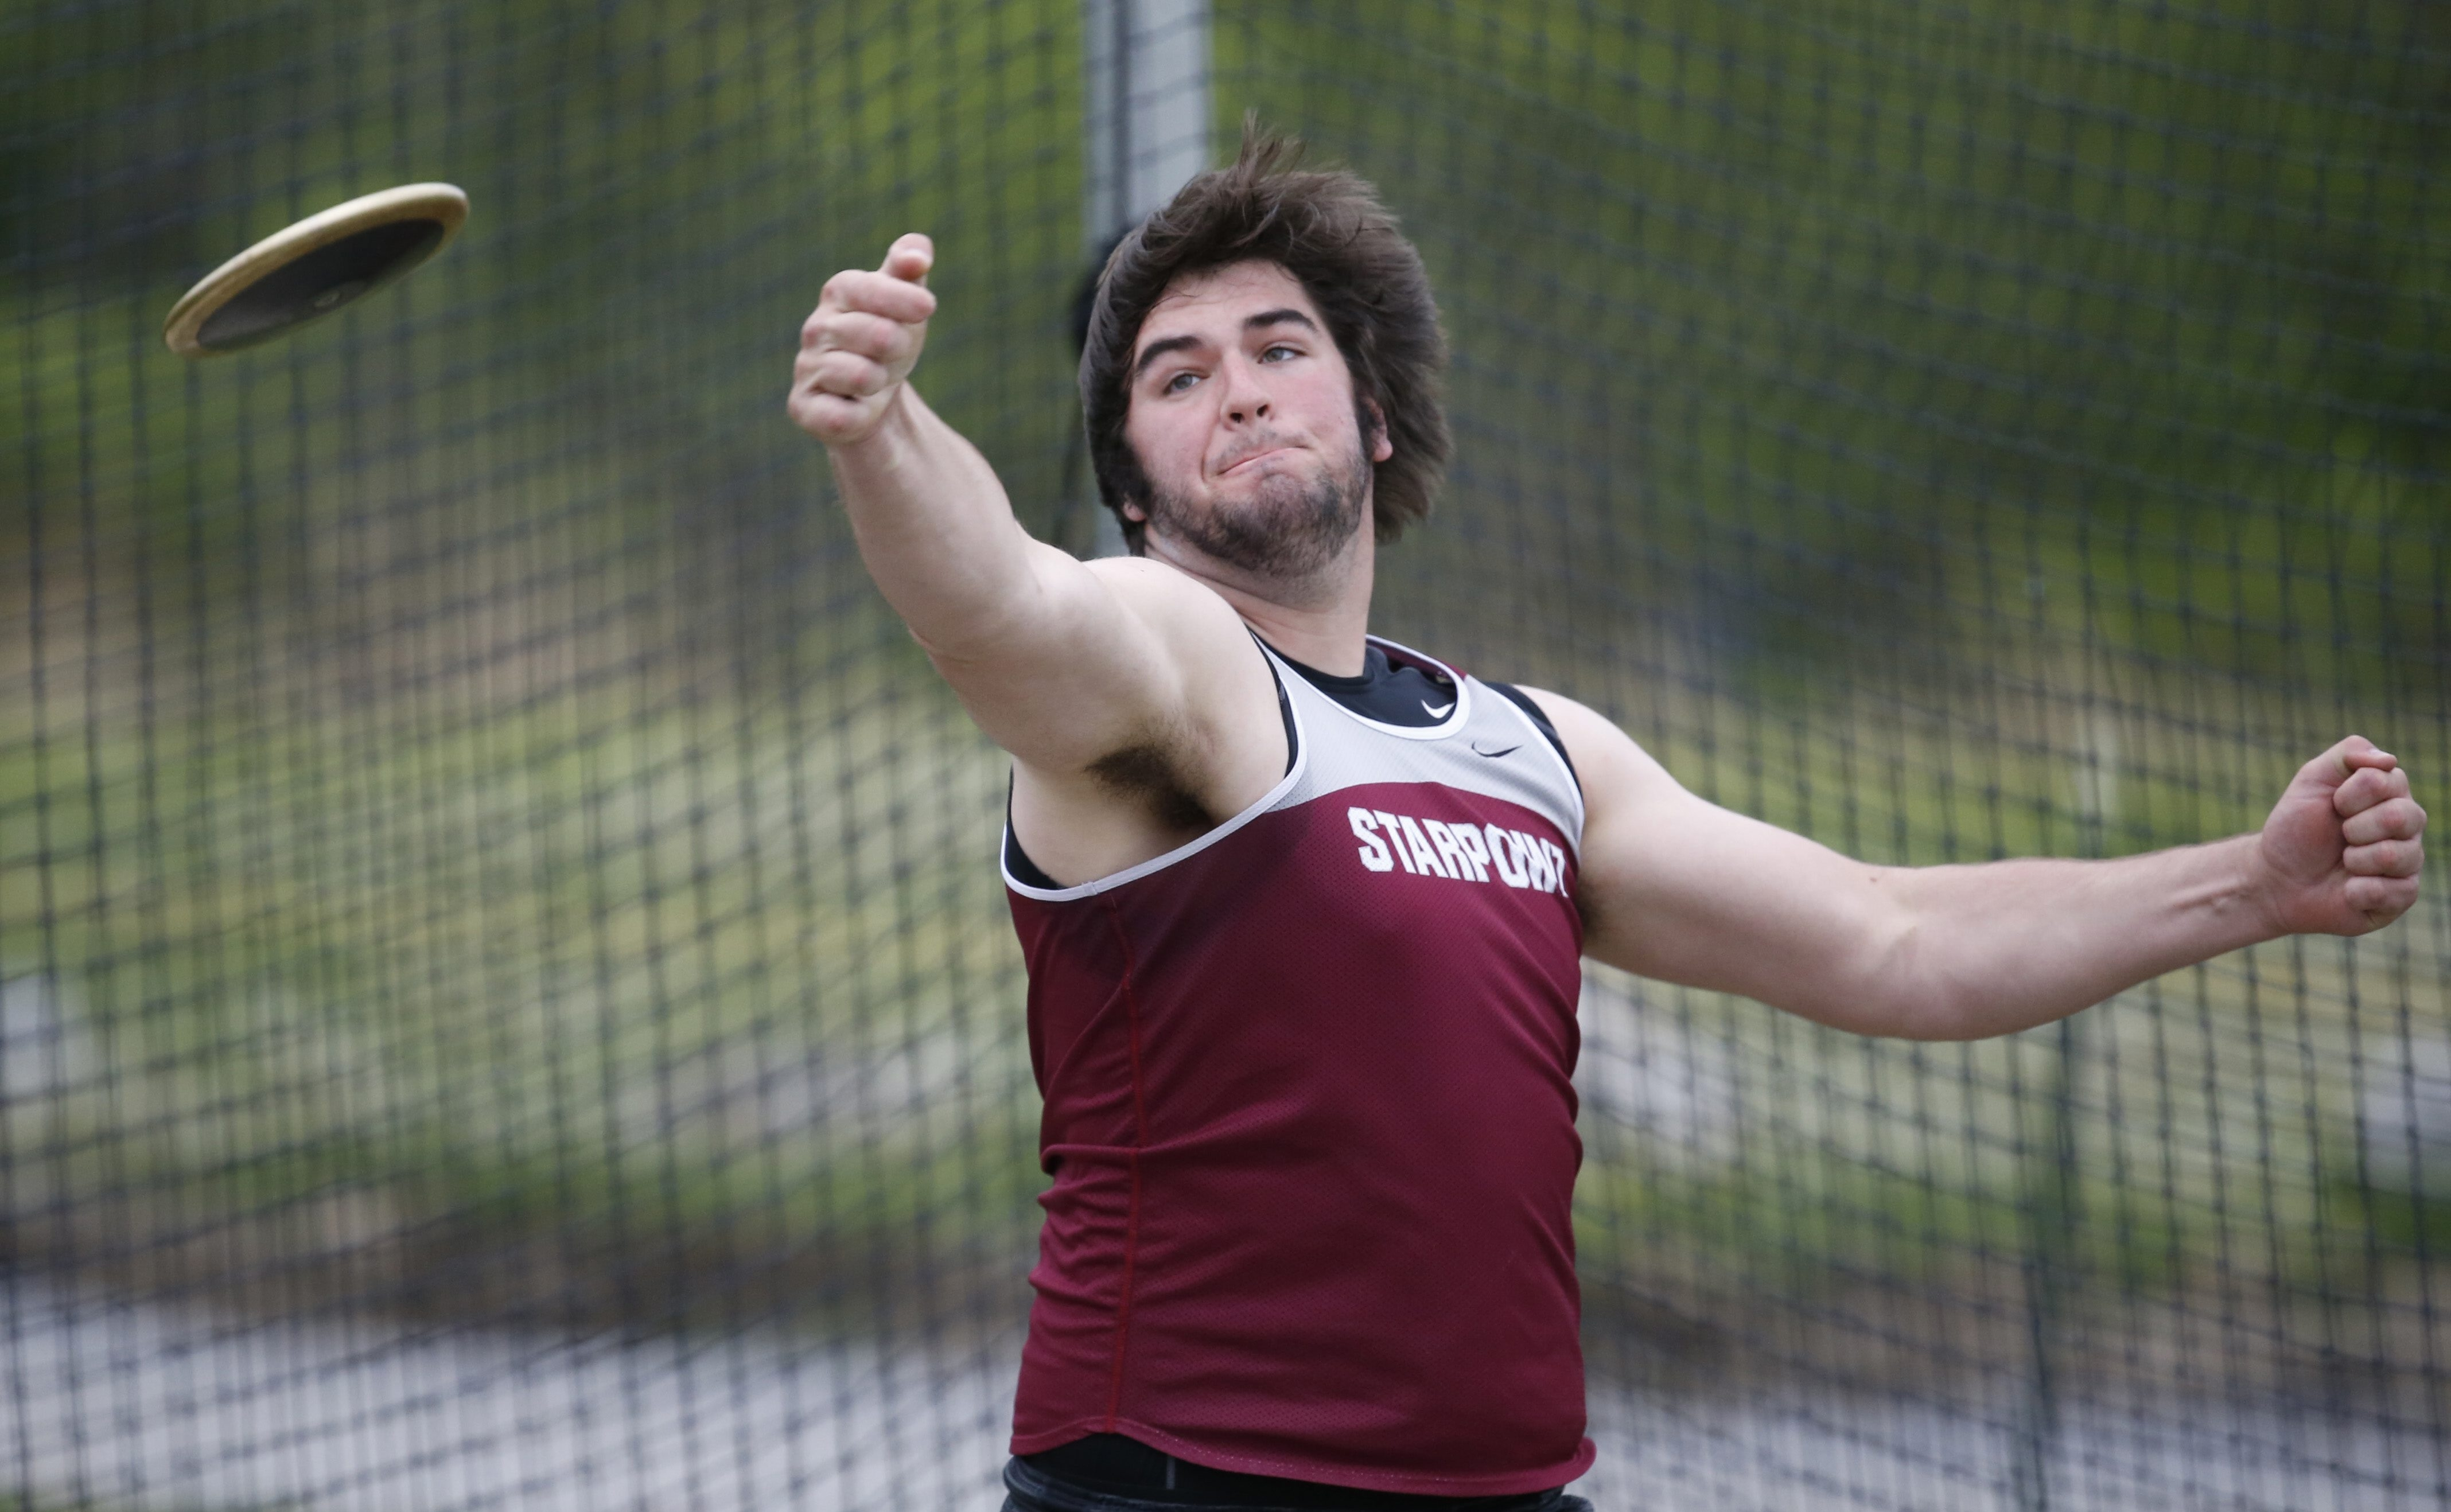 Starpoint's Sam Wray was one of the big winners at the 42nd annual Carl J. Roesch Memorial Boys Track Classic.